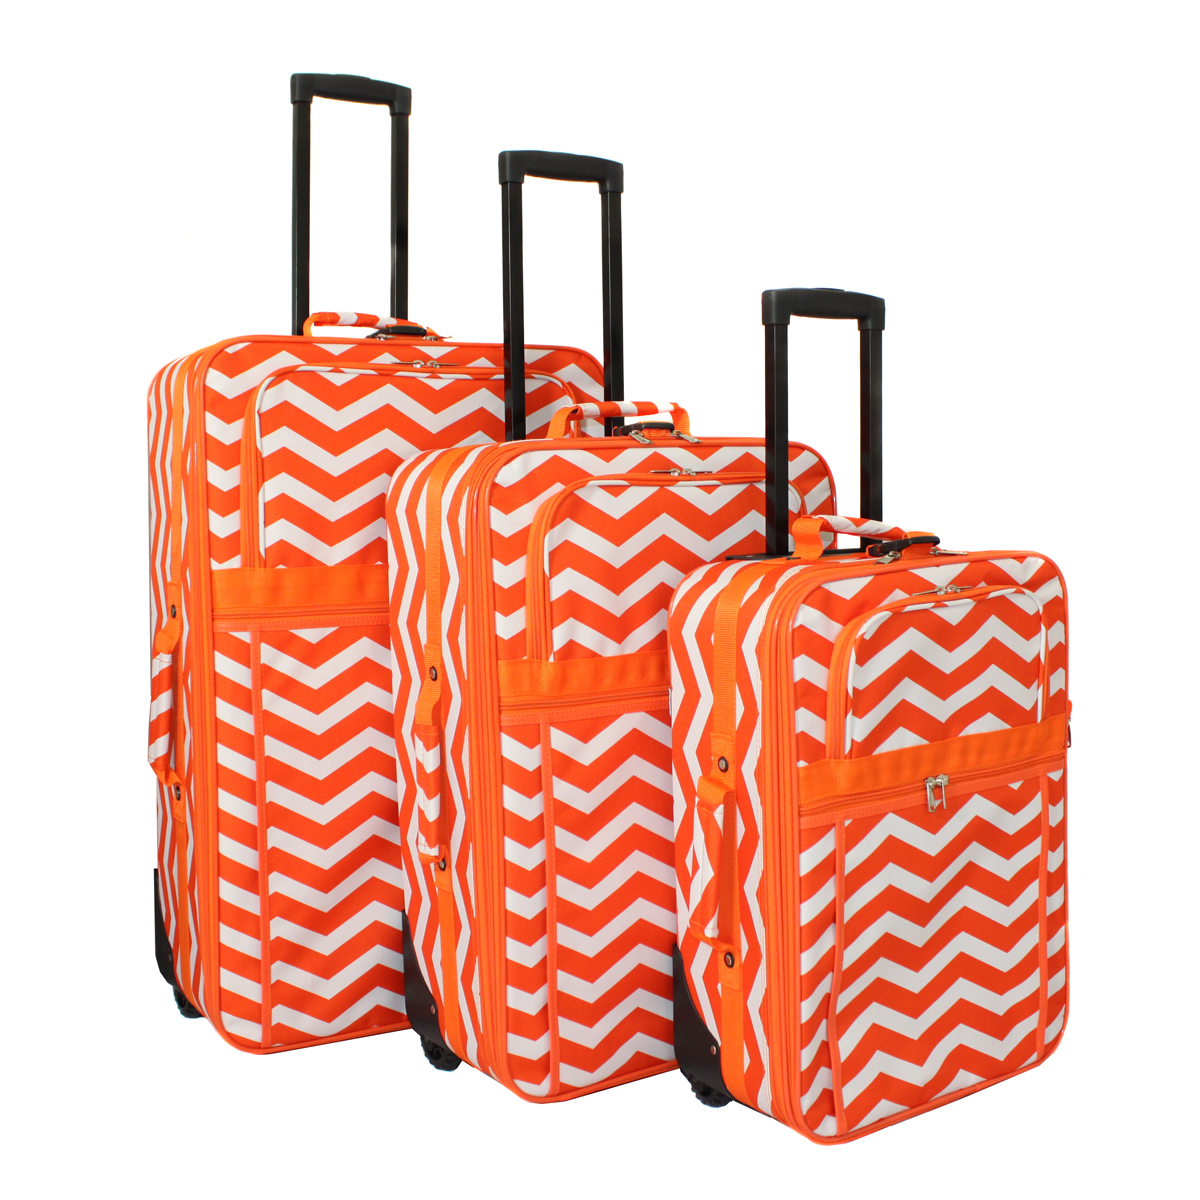 All-Seasons ZigZag Prints 3-Piece Expandable Upright Luggage Set